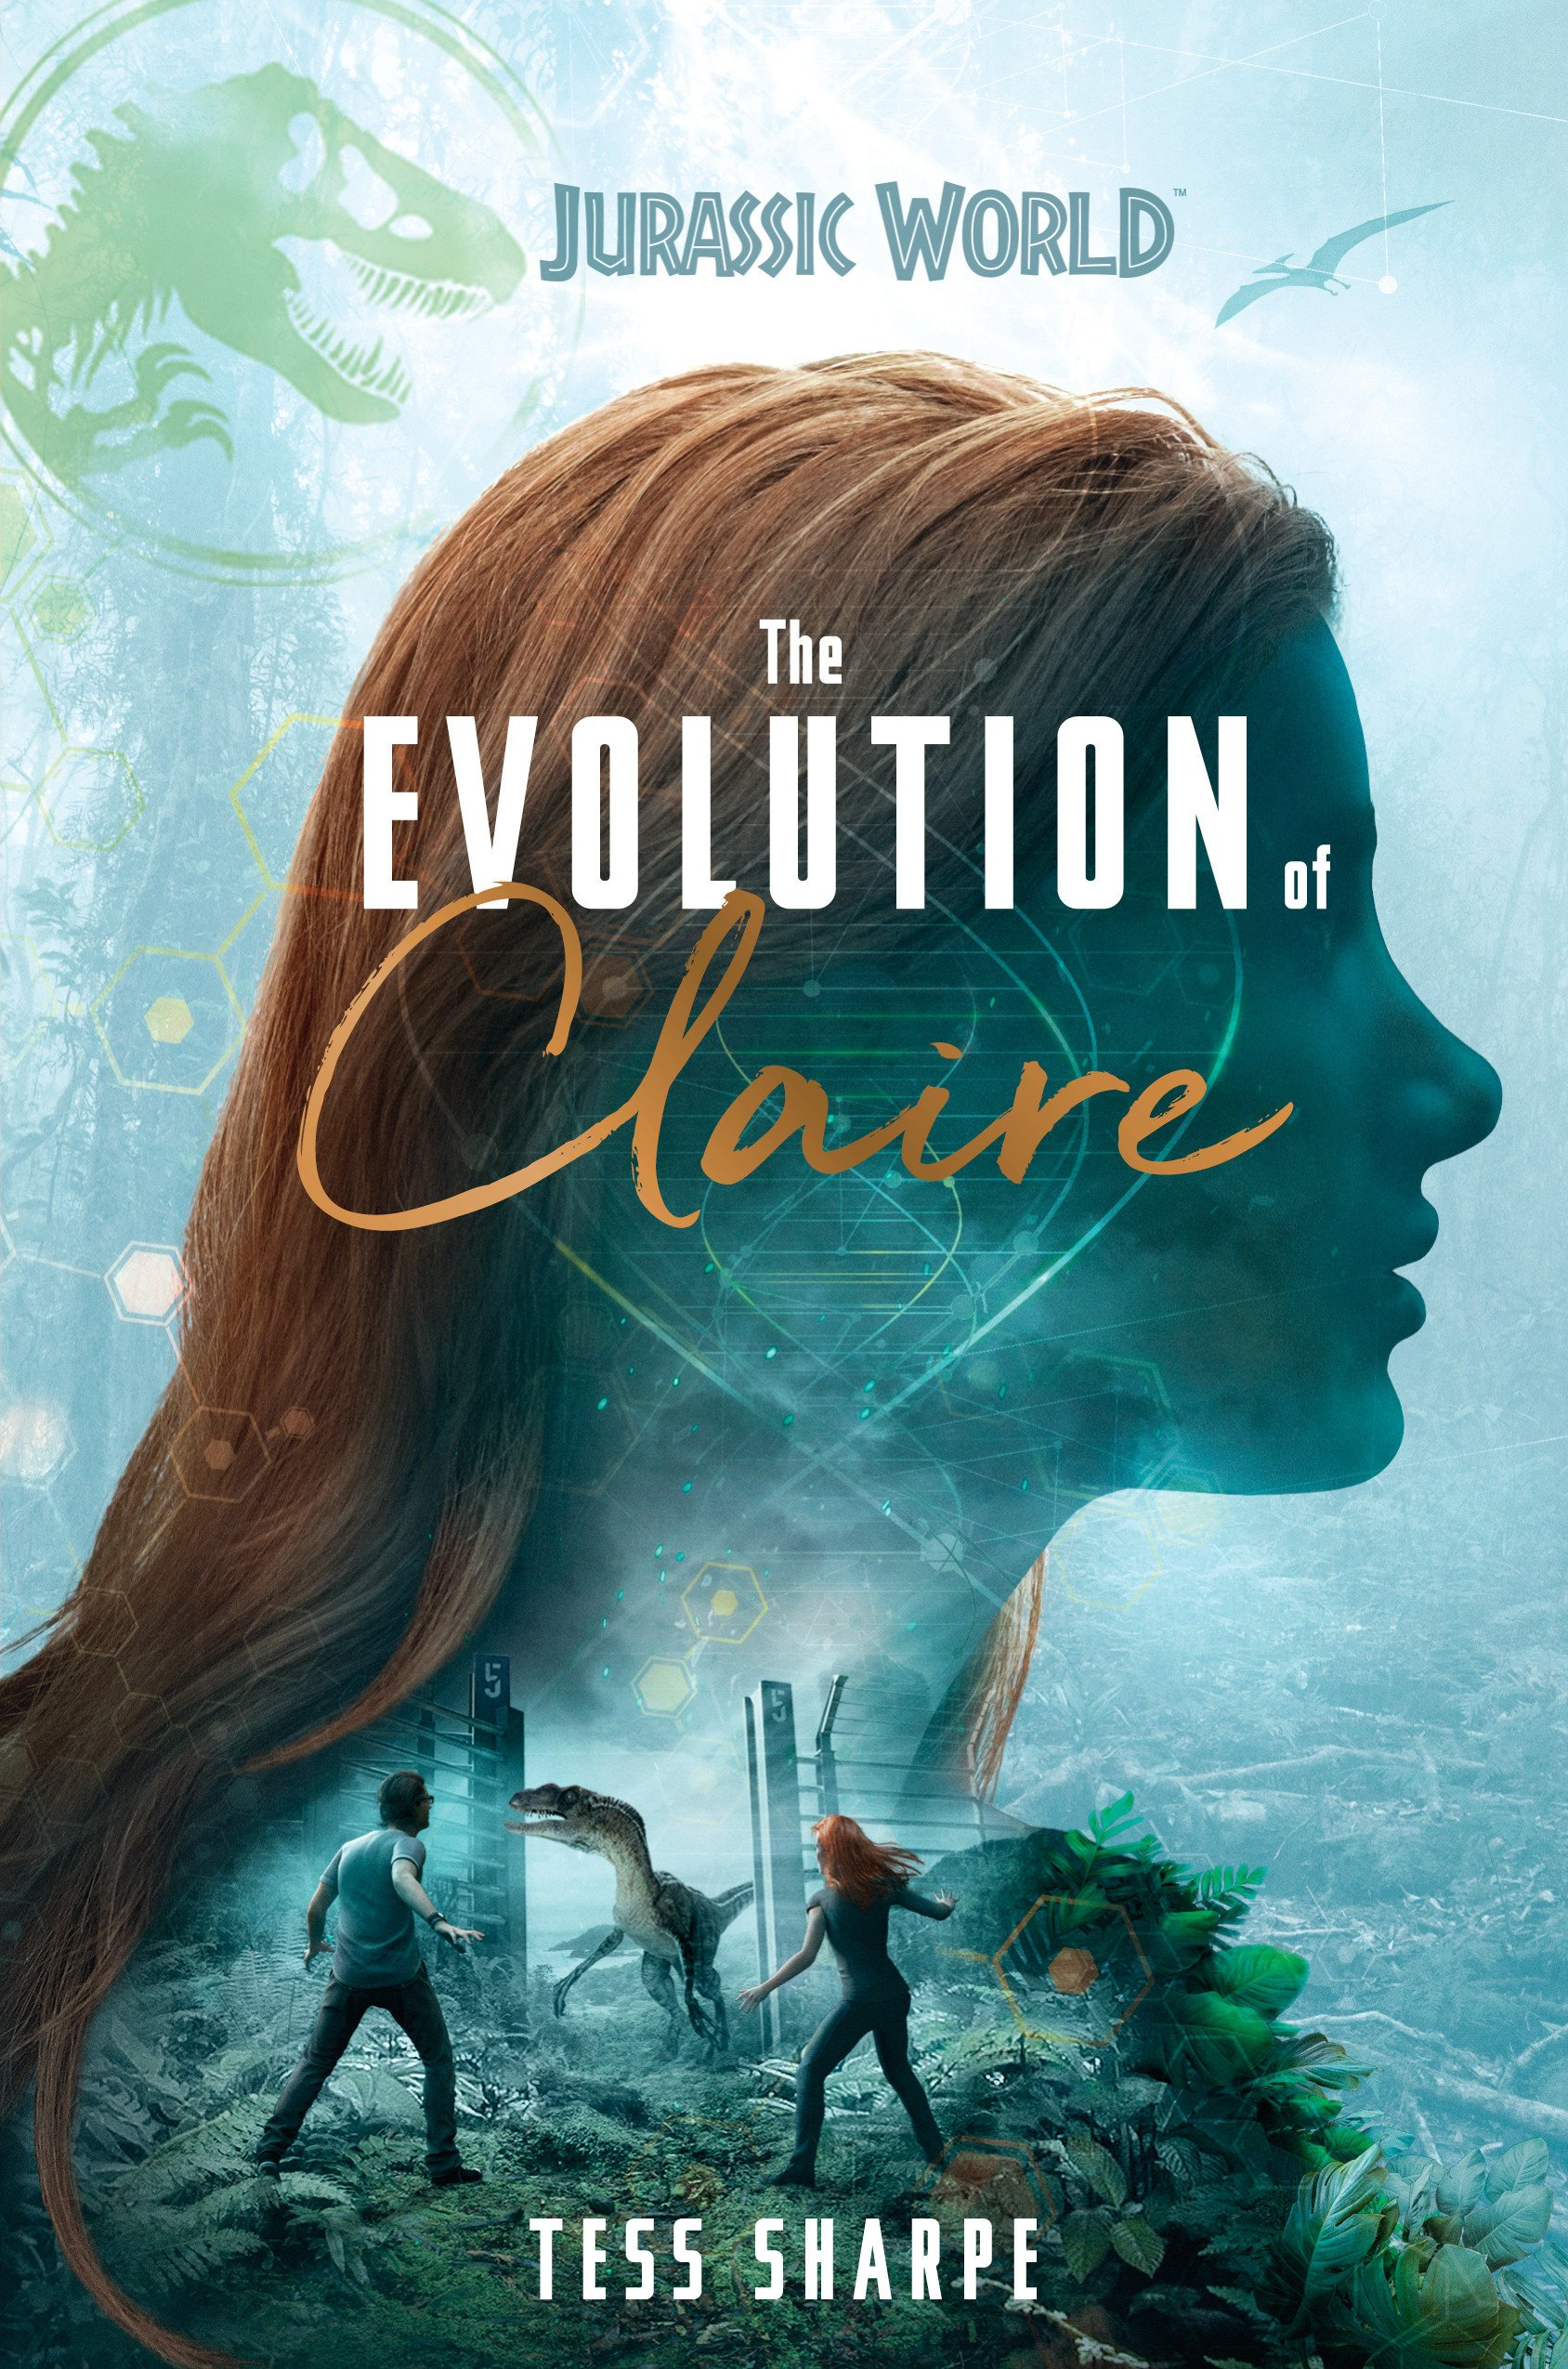 The Evolution of Claire (Jurassic World)